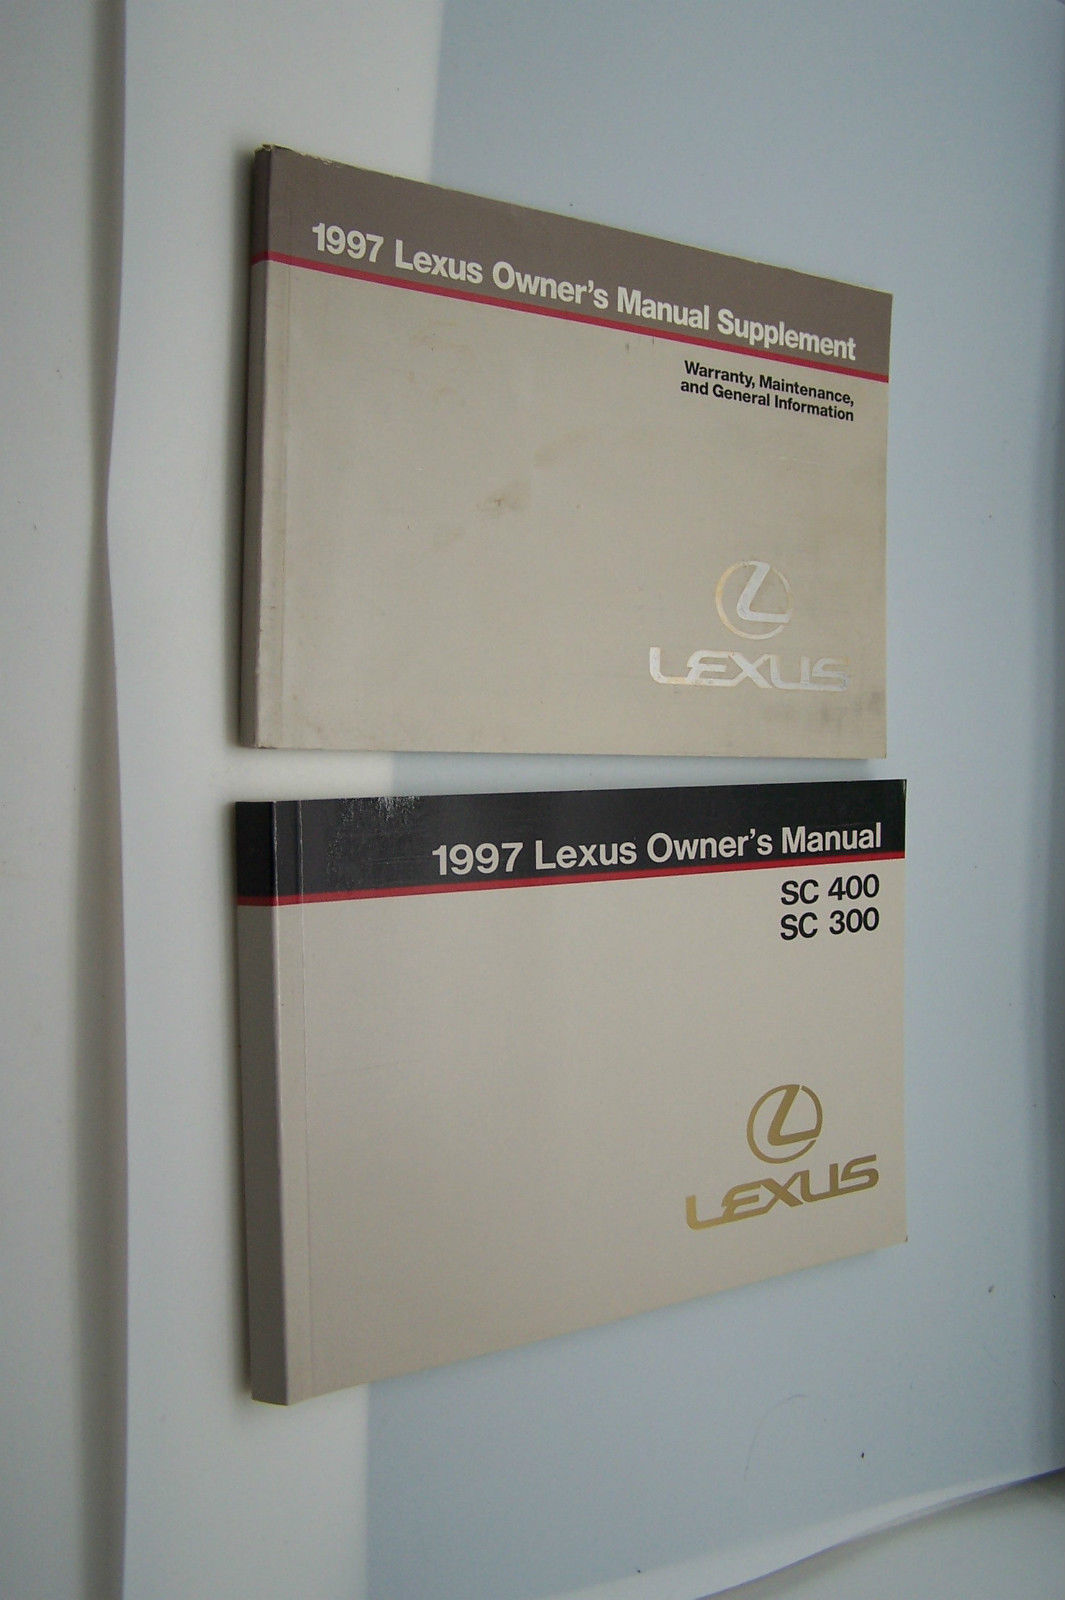 1997 lexus sc300 sc400 owners manual service and 19 similar items rh bonanza com Used 1997 Lexus SC300 Used 1997 Lexus SC300